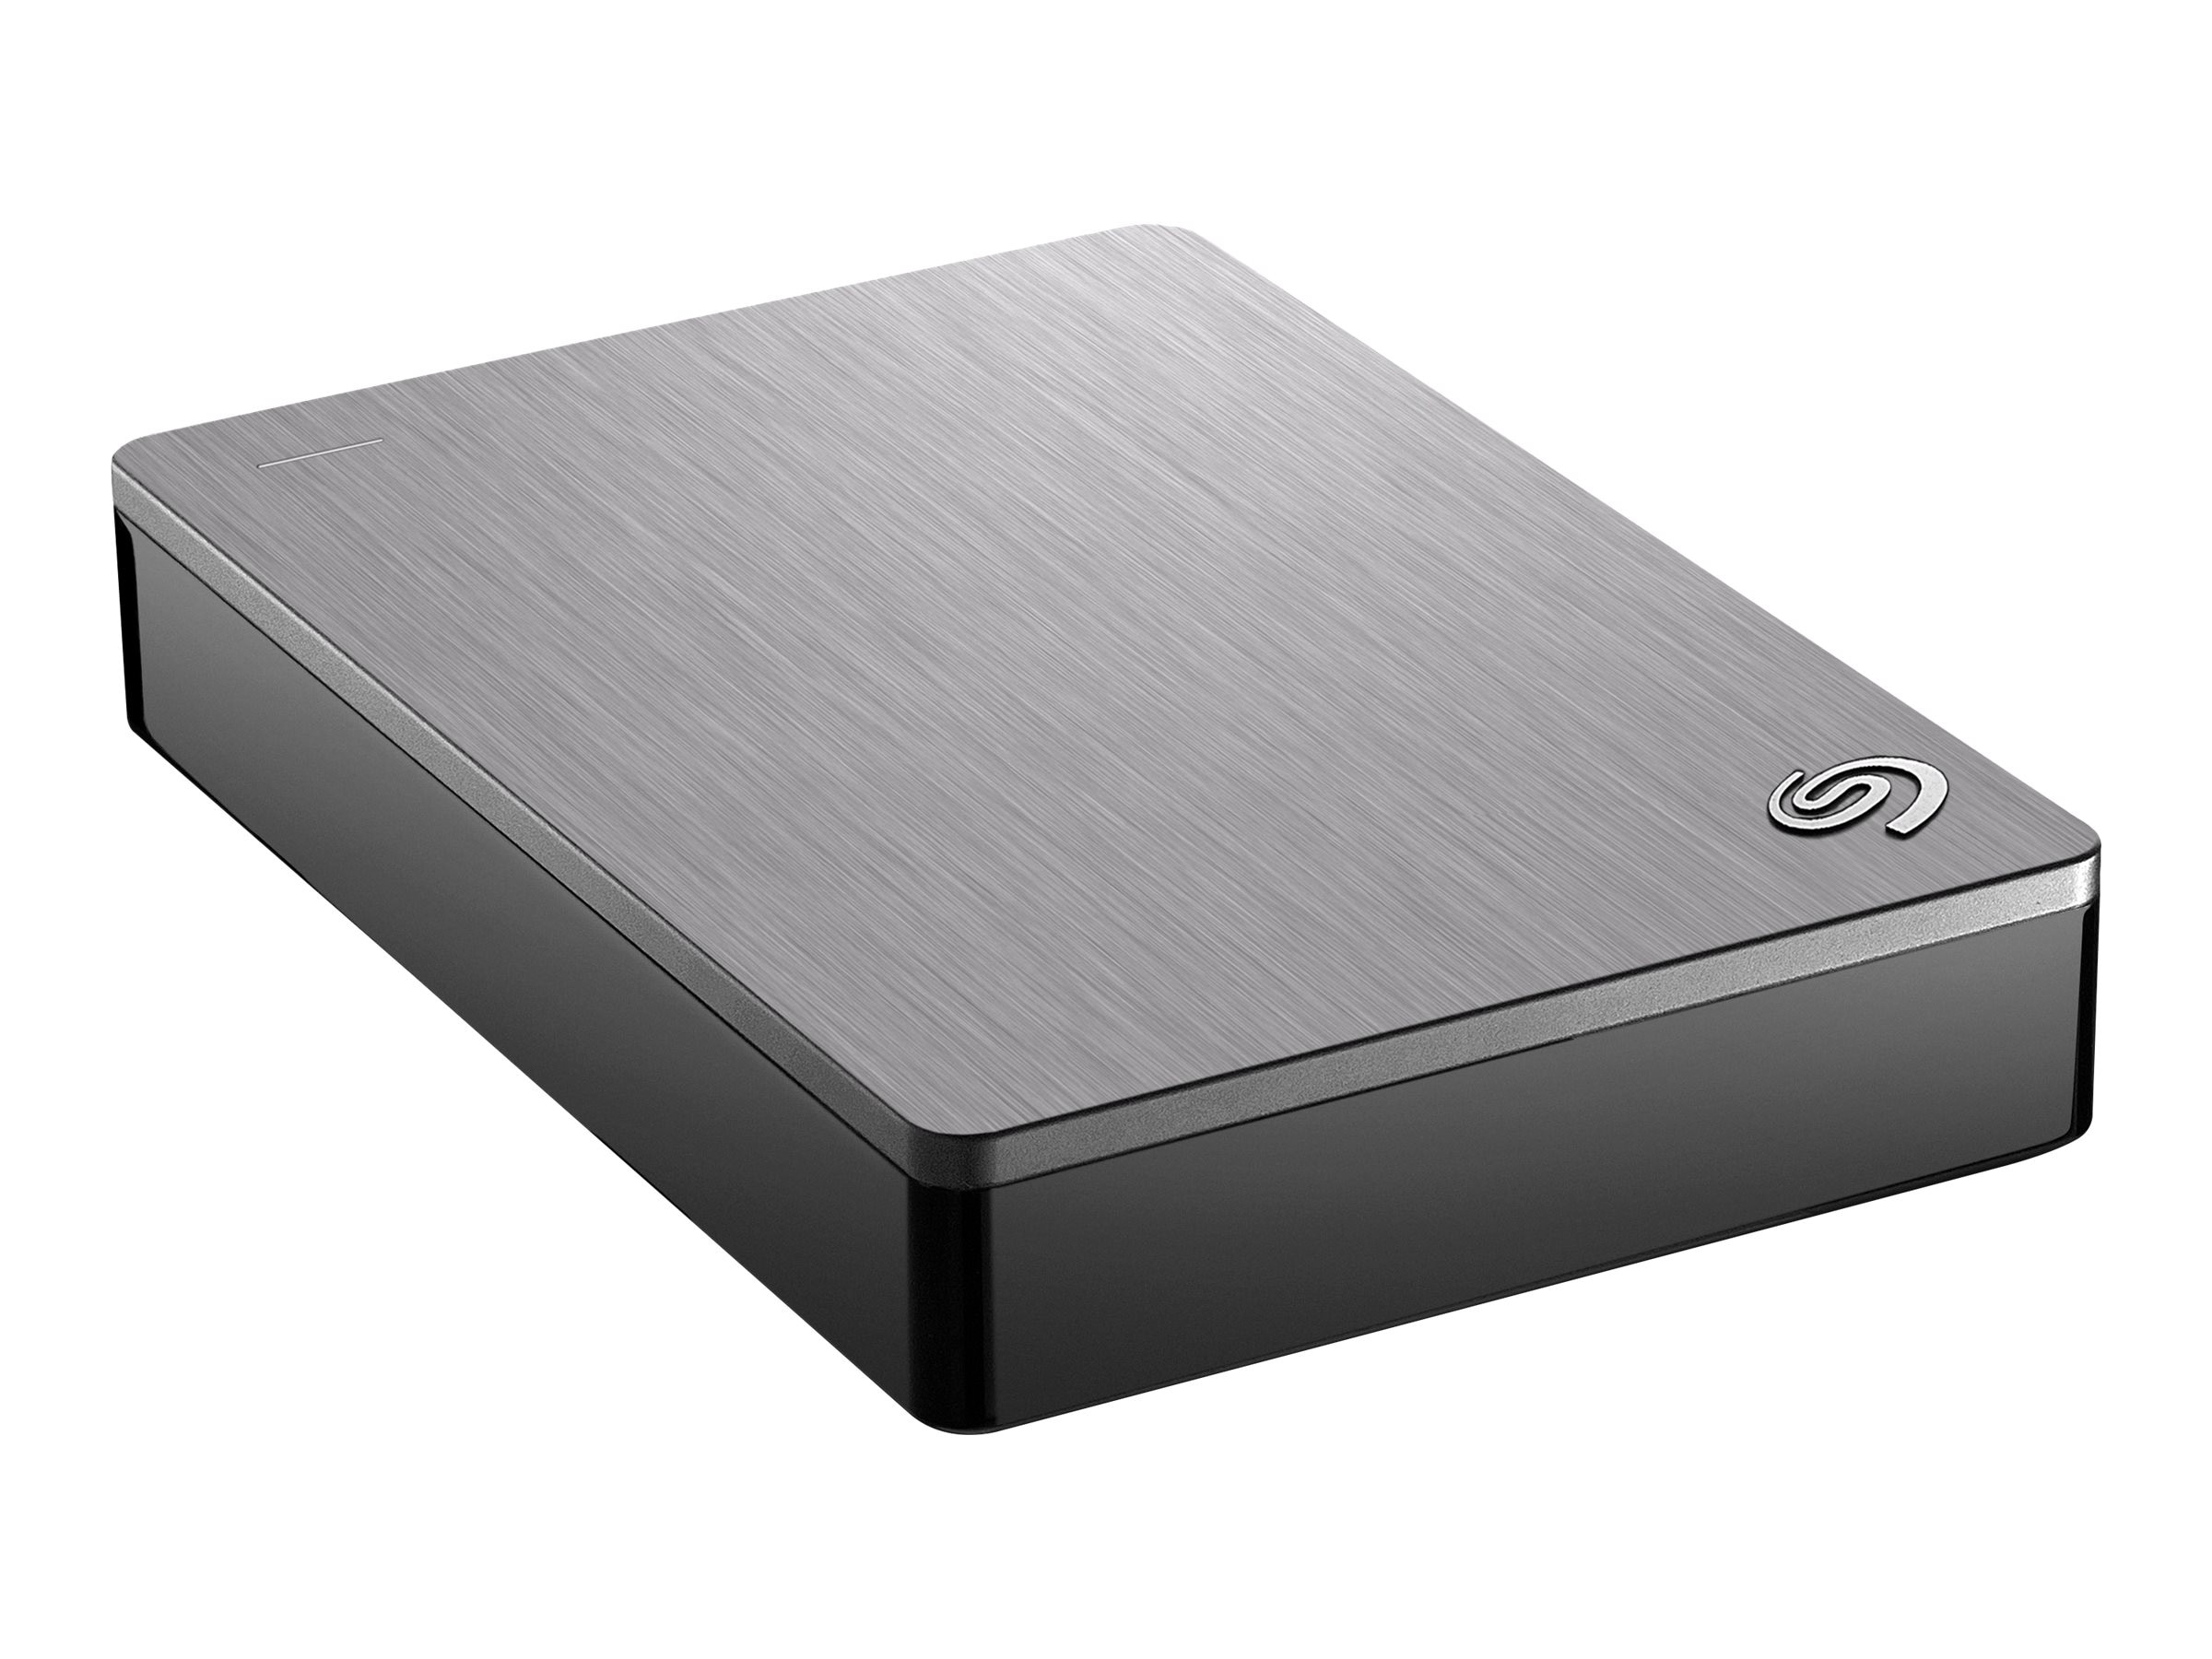 Seagate Technology STDS4000400 Image 6